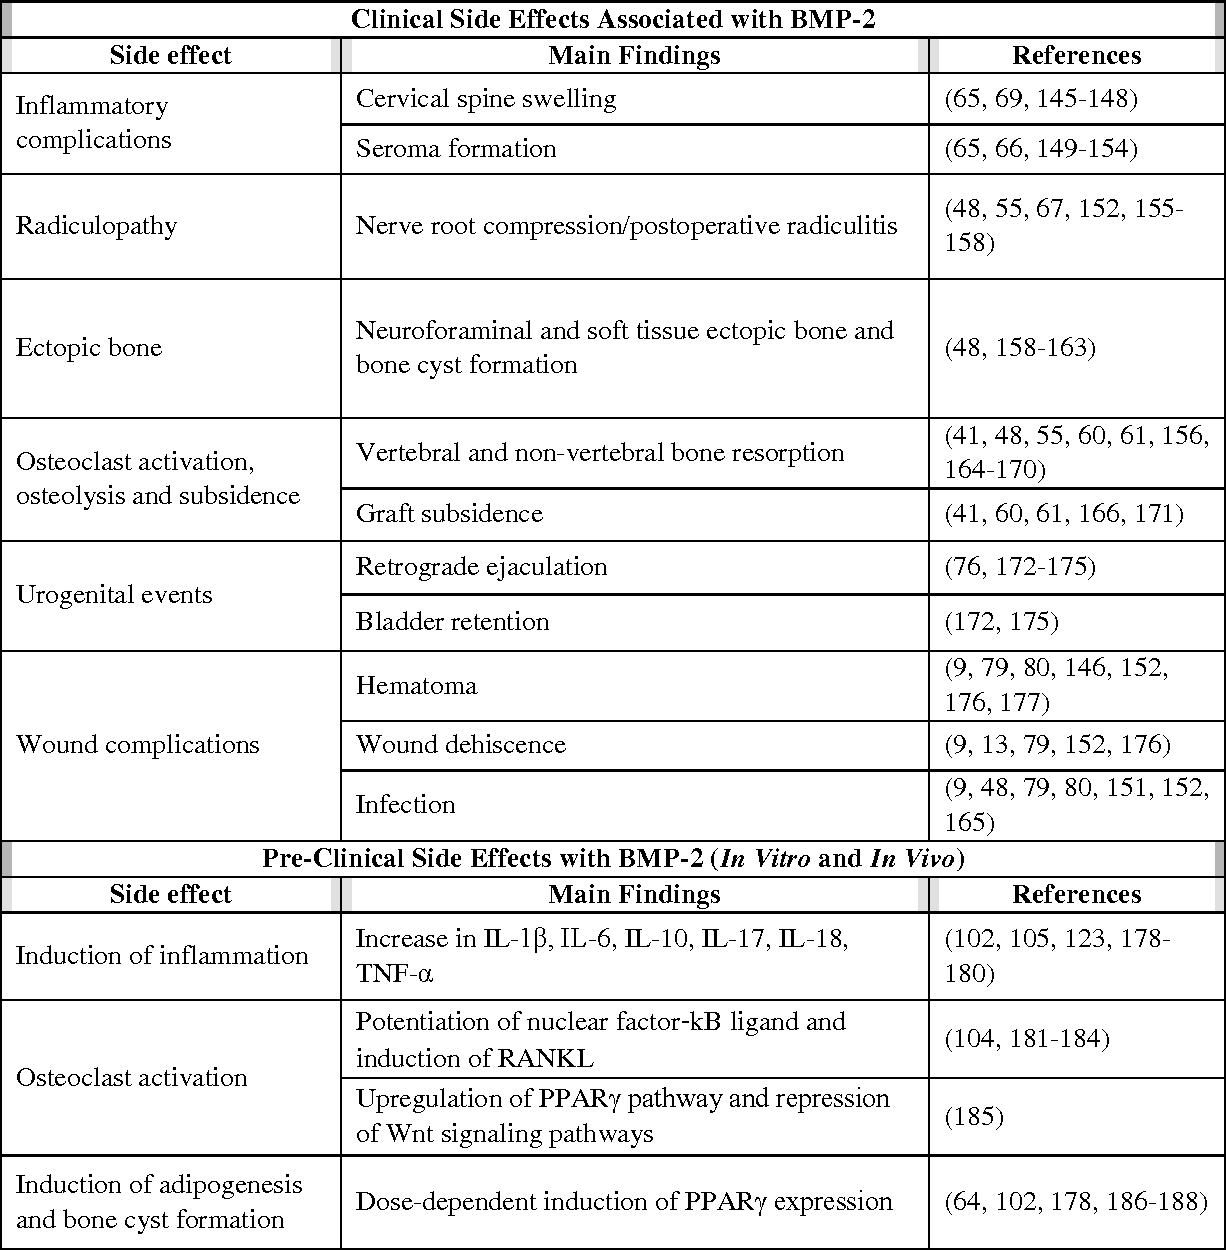 A Review of the Clinical Side Effects of Bone Morphogenetic